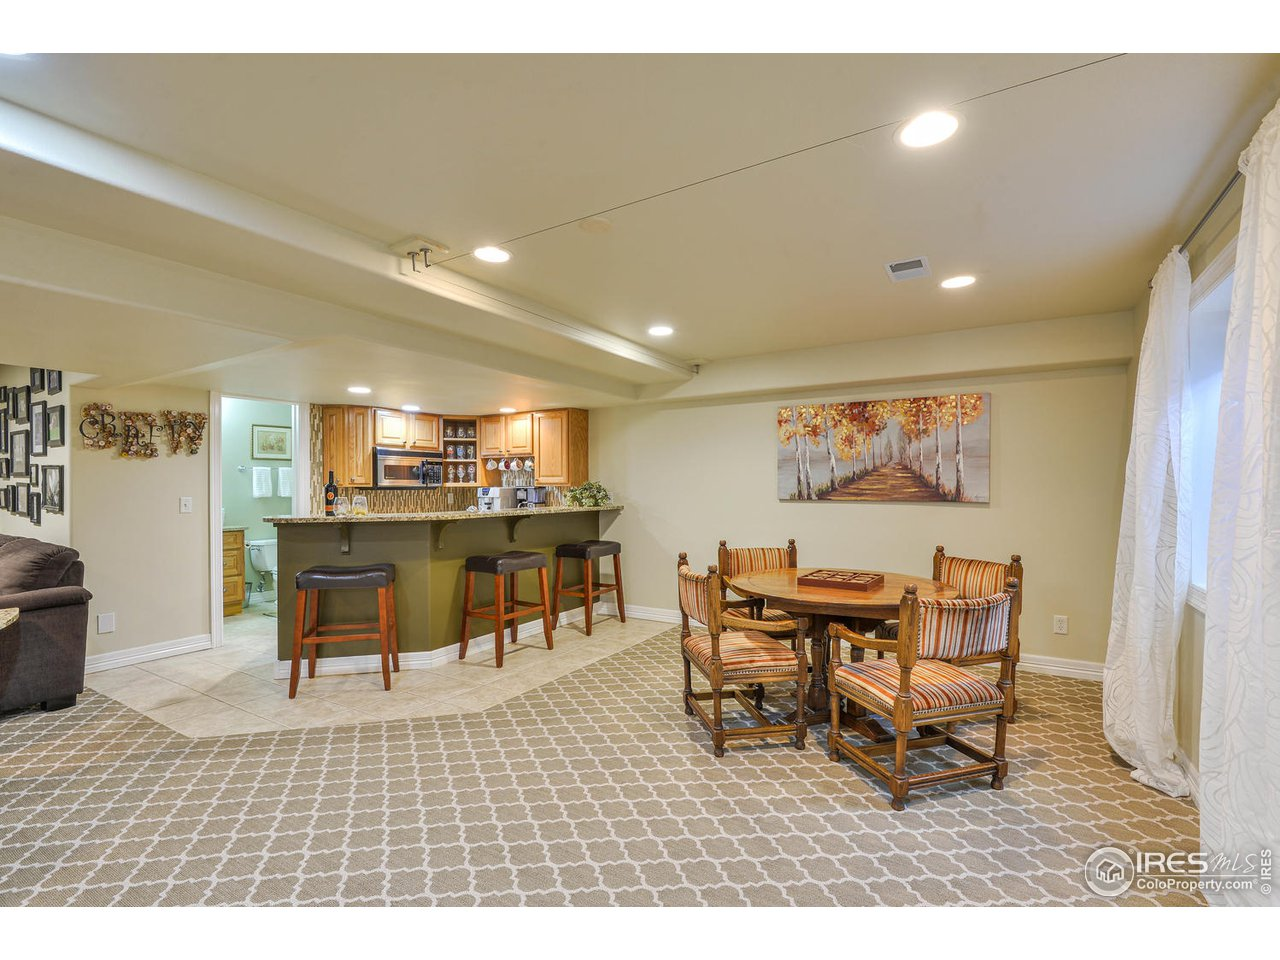 Basement with wet bar